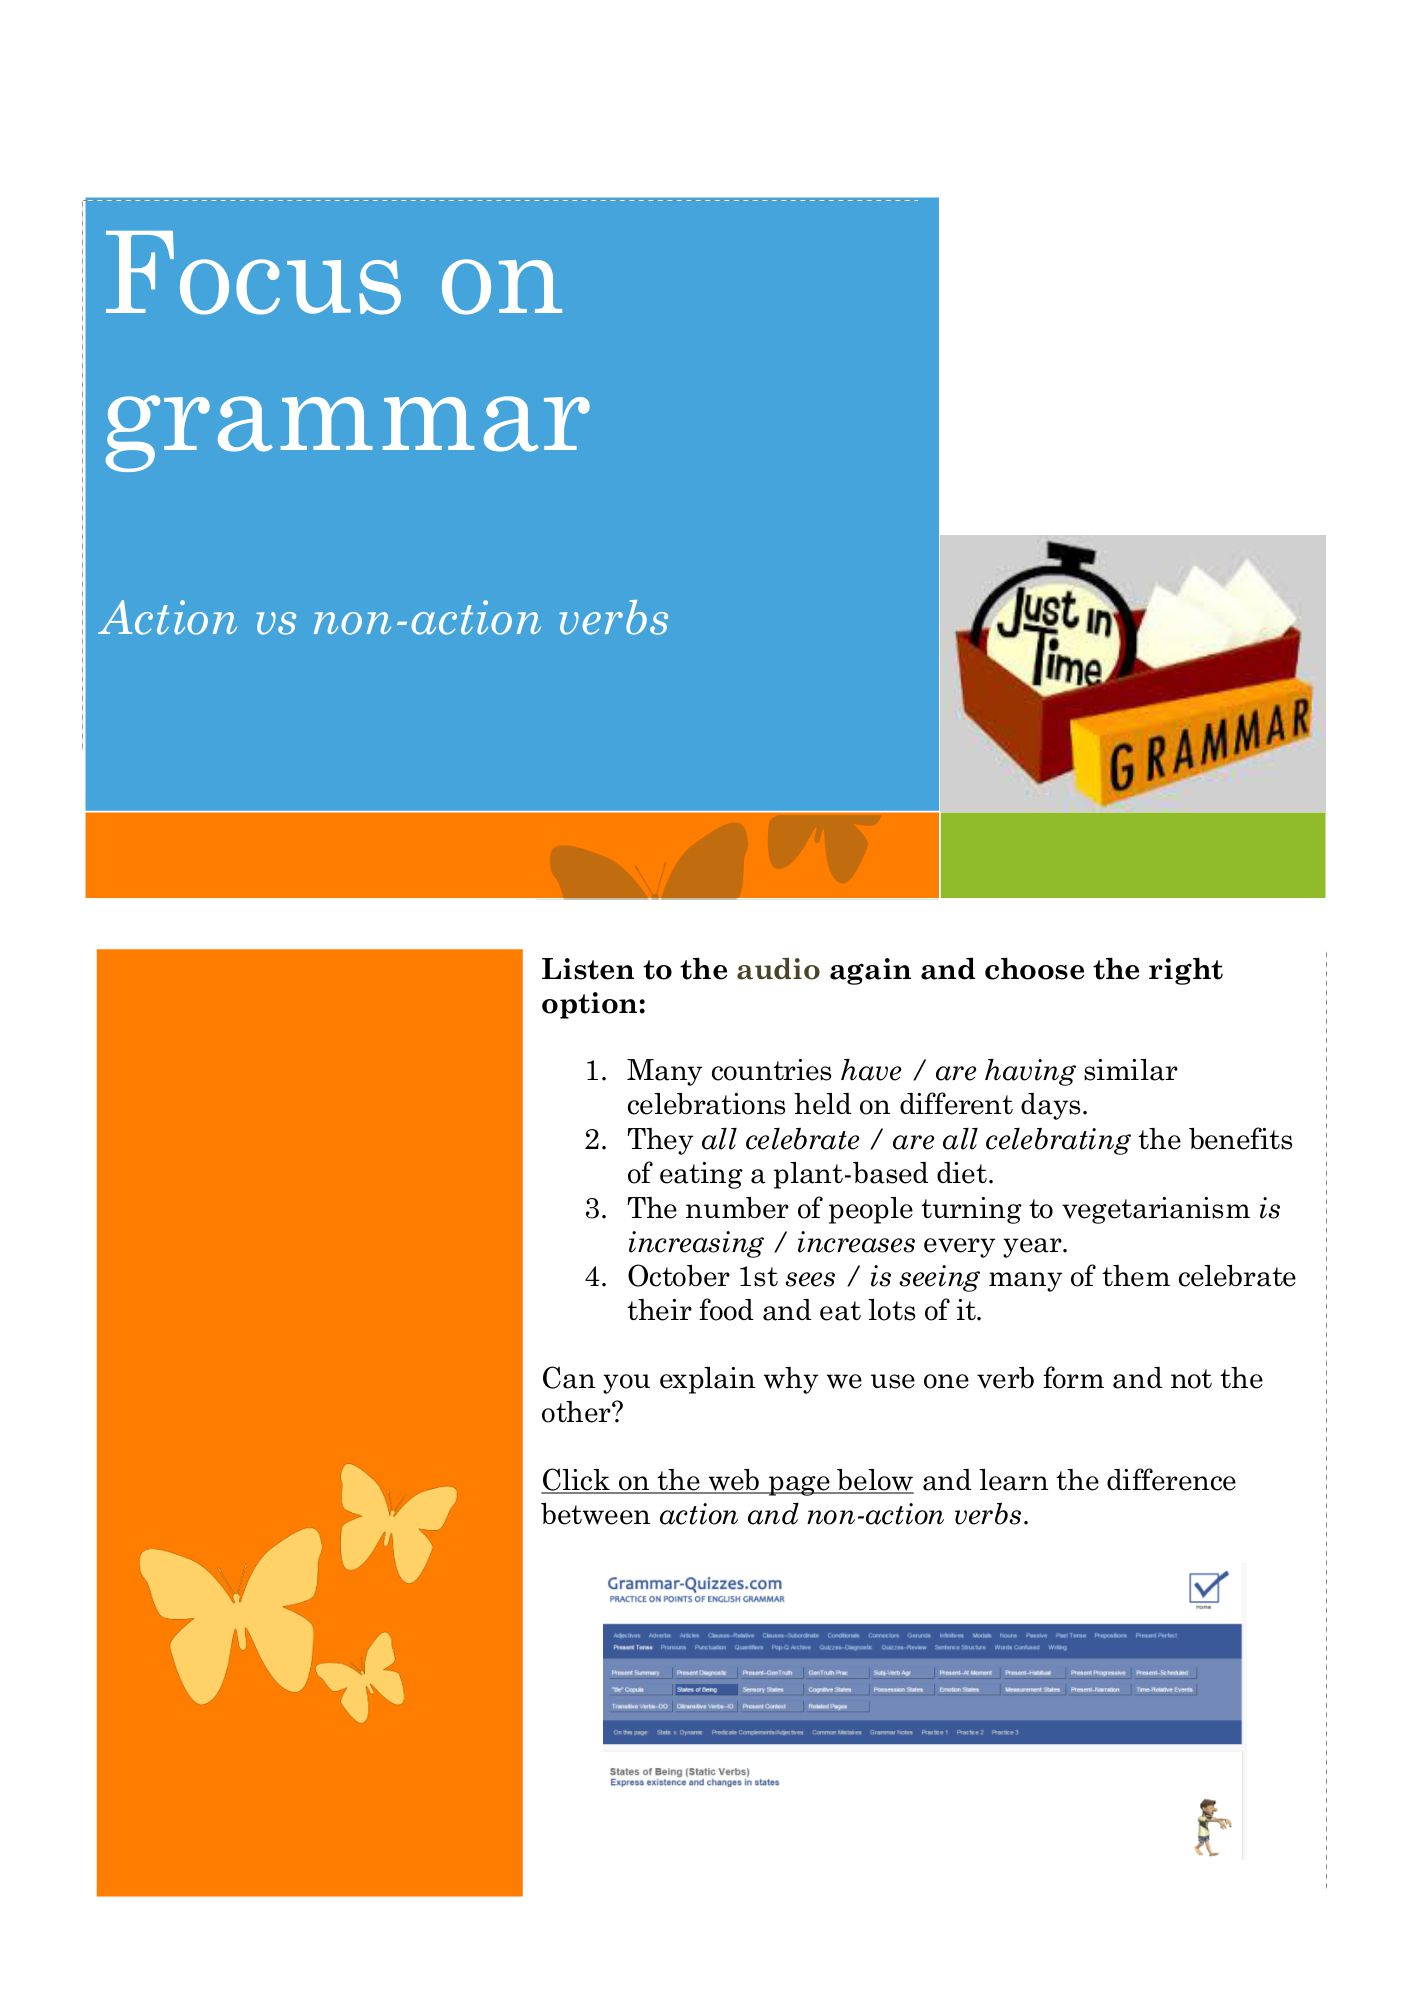 Focus on grammar 2: Action vs non-action verbs  Unit 1 week